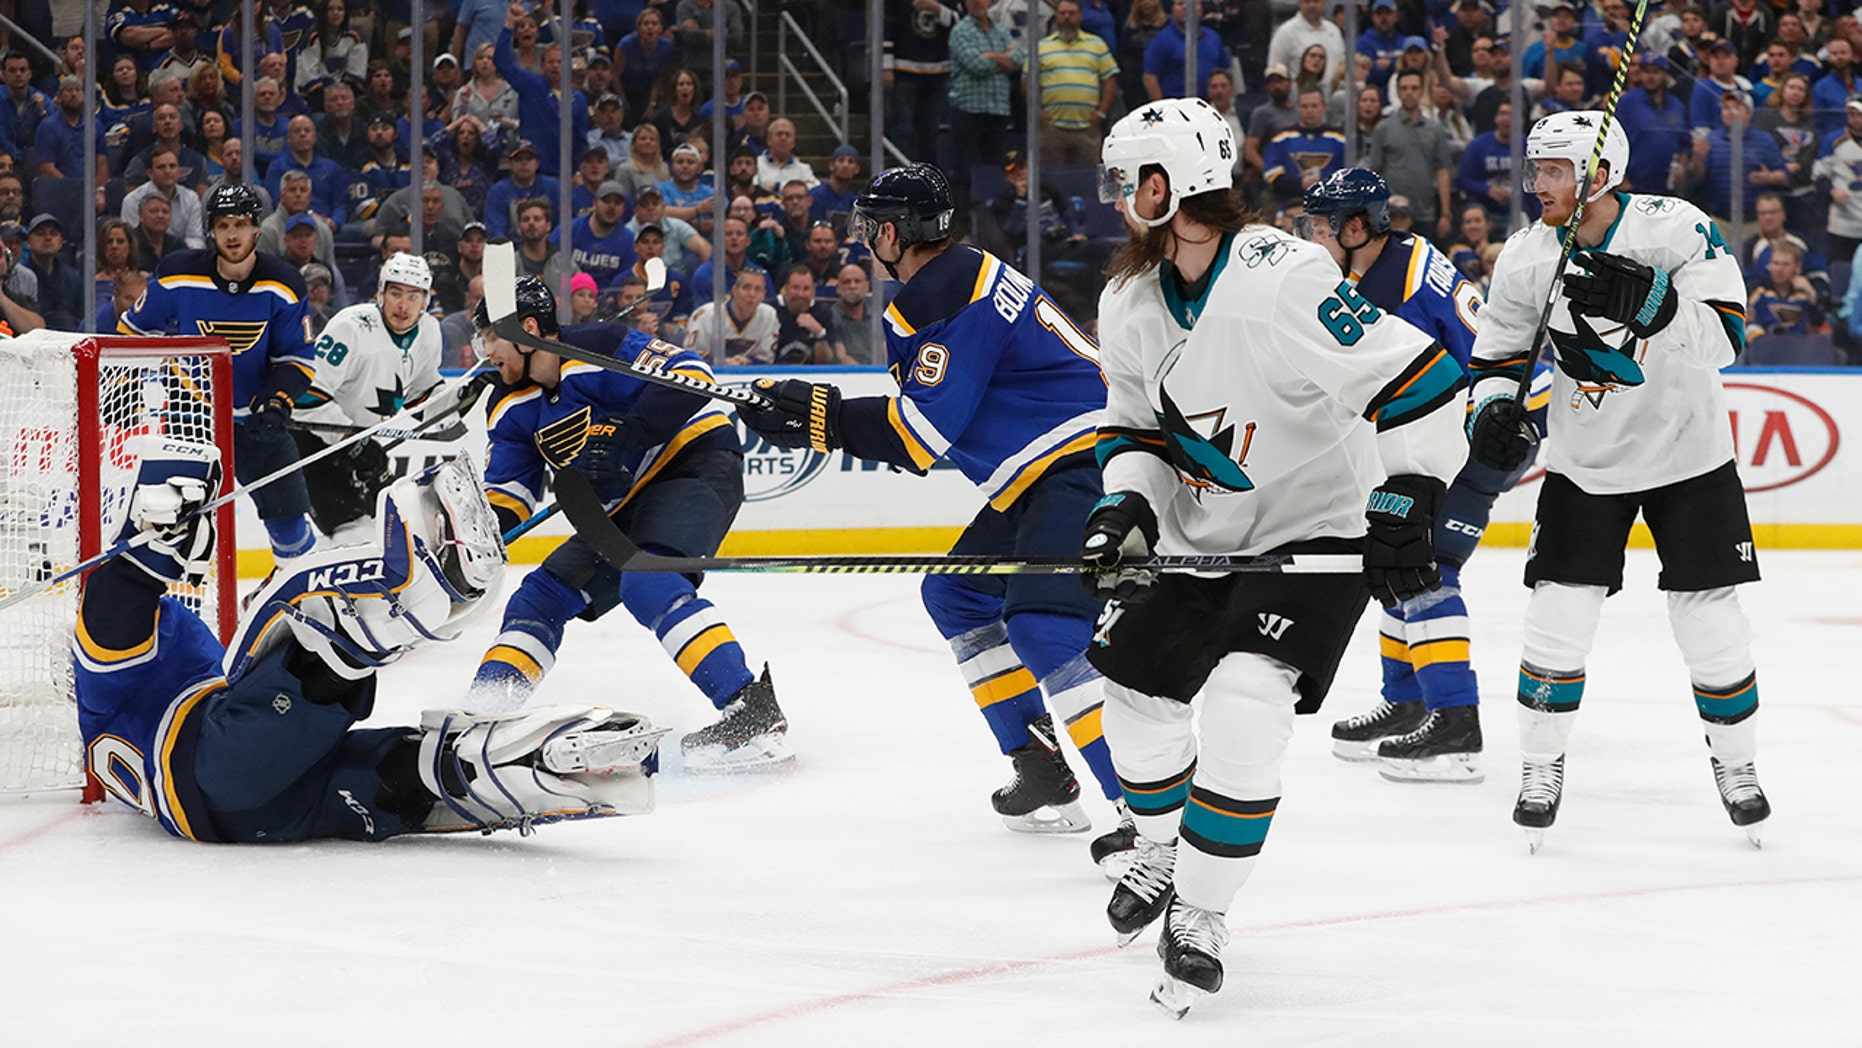 A major officiating gaffe occurred in the Stanley Cup playoffs when San Jose's Erik Karlsson scored a goal set up by a hand pass. While hockey officials have the toughest job _ they must be able to skate like the players _ they do not get a pass for their mistakes, either. (AP Photo/Jeff Roberson, File)